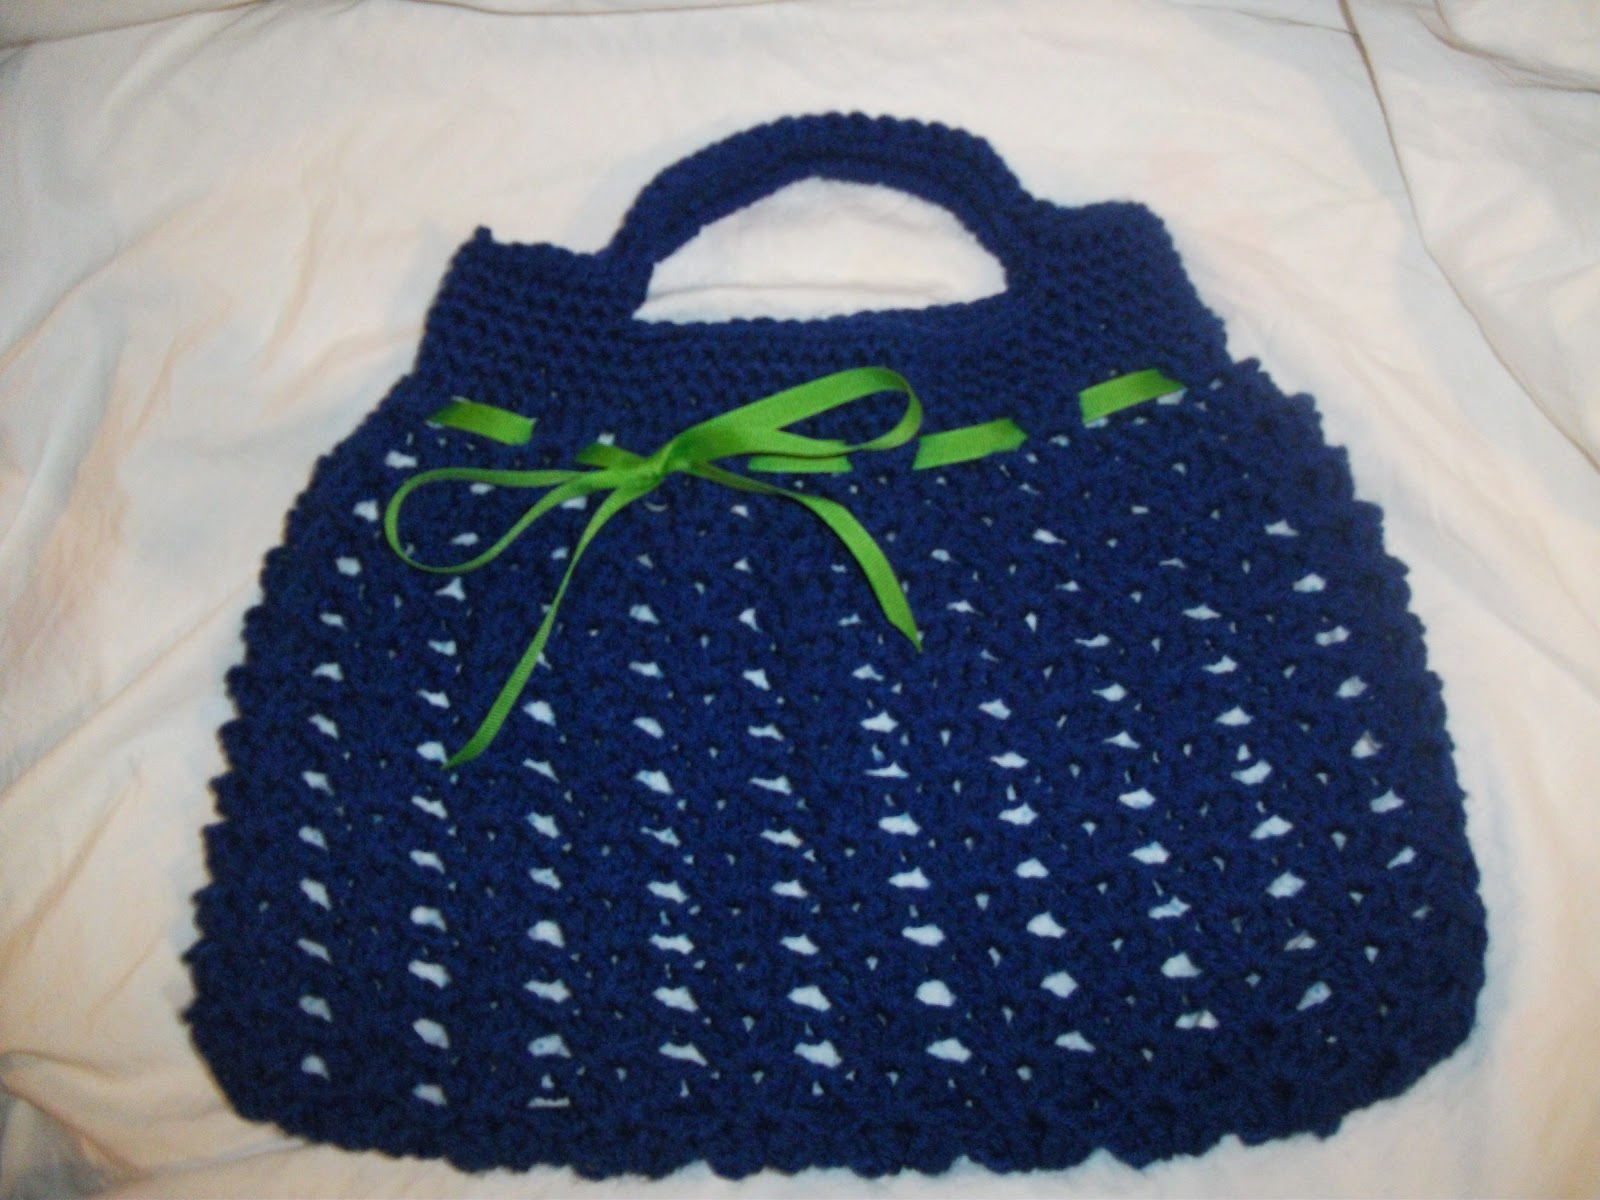 Crochet Hobo Bag Pattern : ... is a link to the lovely person that shared the pattern with the world